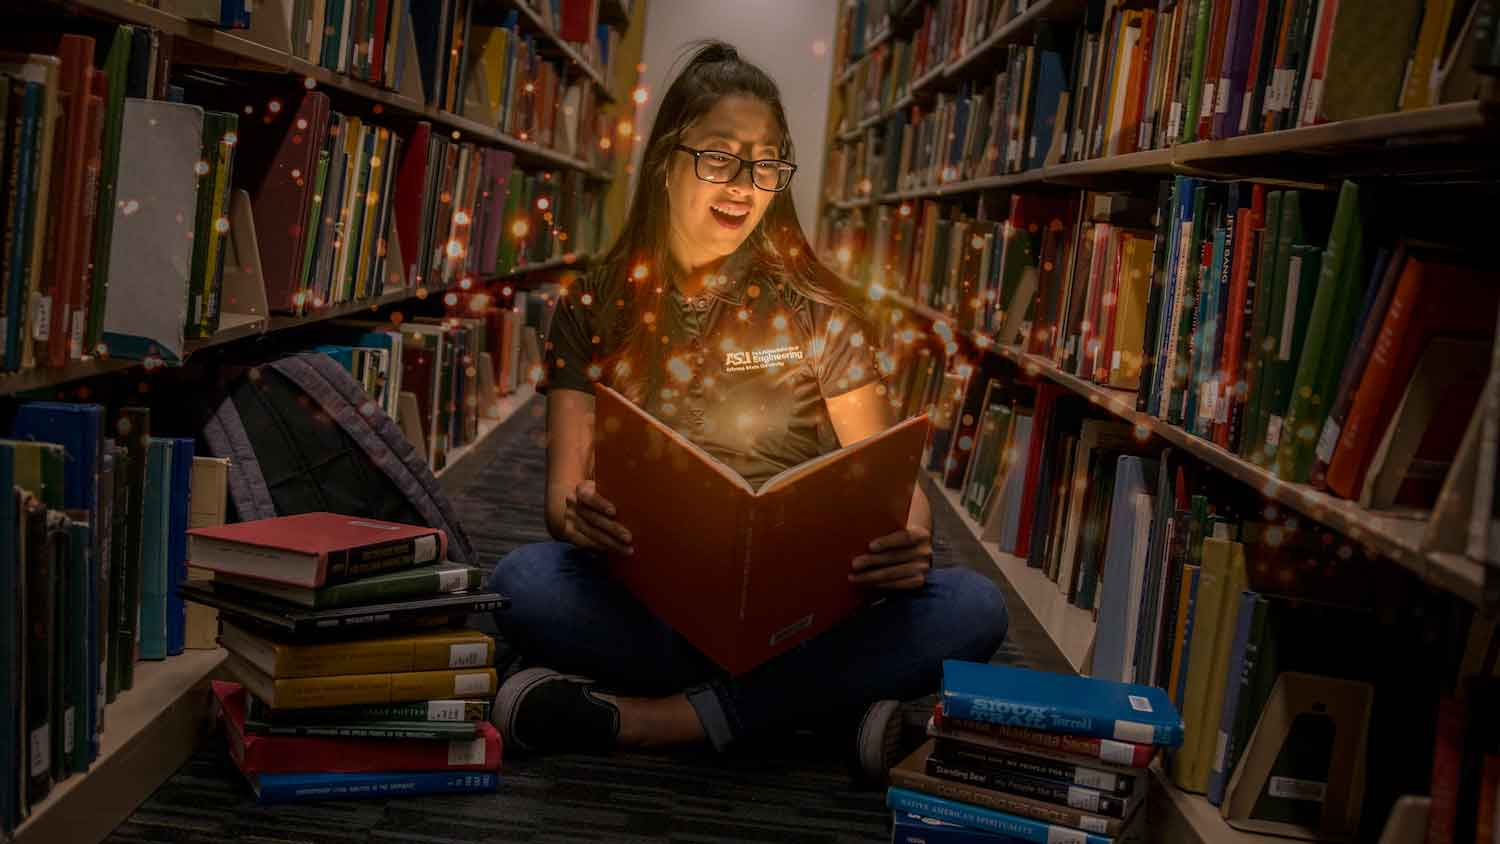 A young woman student sits between rows of library shelves reading a book, which appears to have a magical, sparkling effect on her